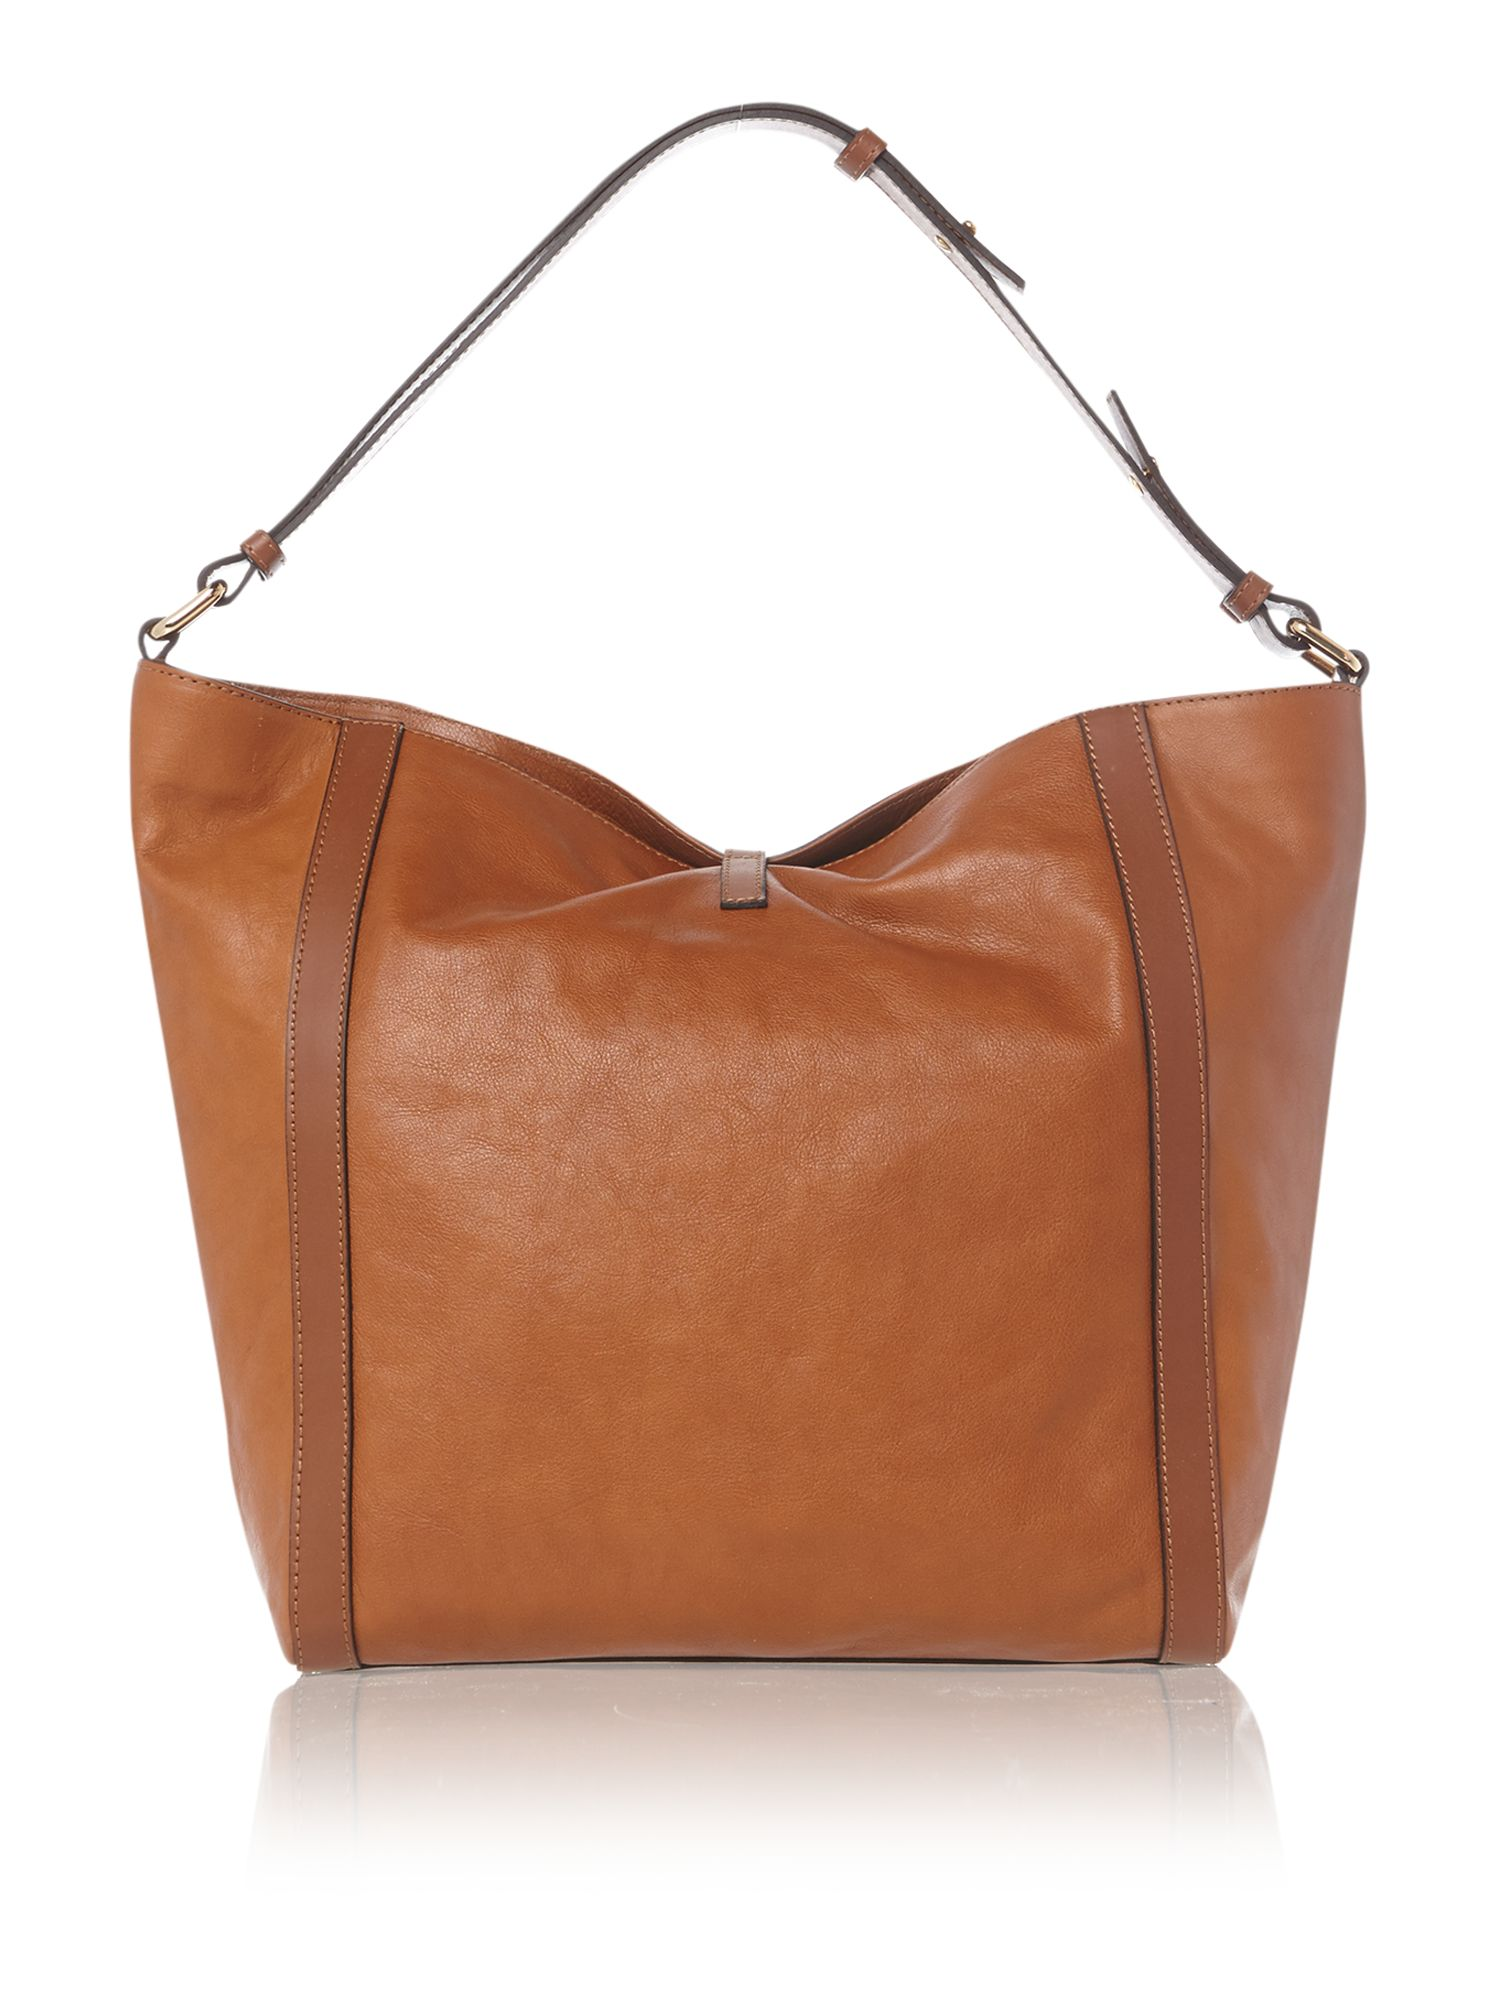 Brown hobo bag